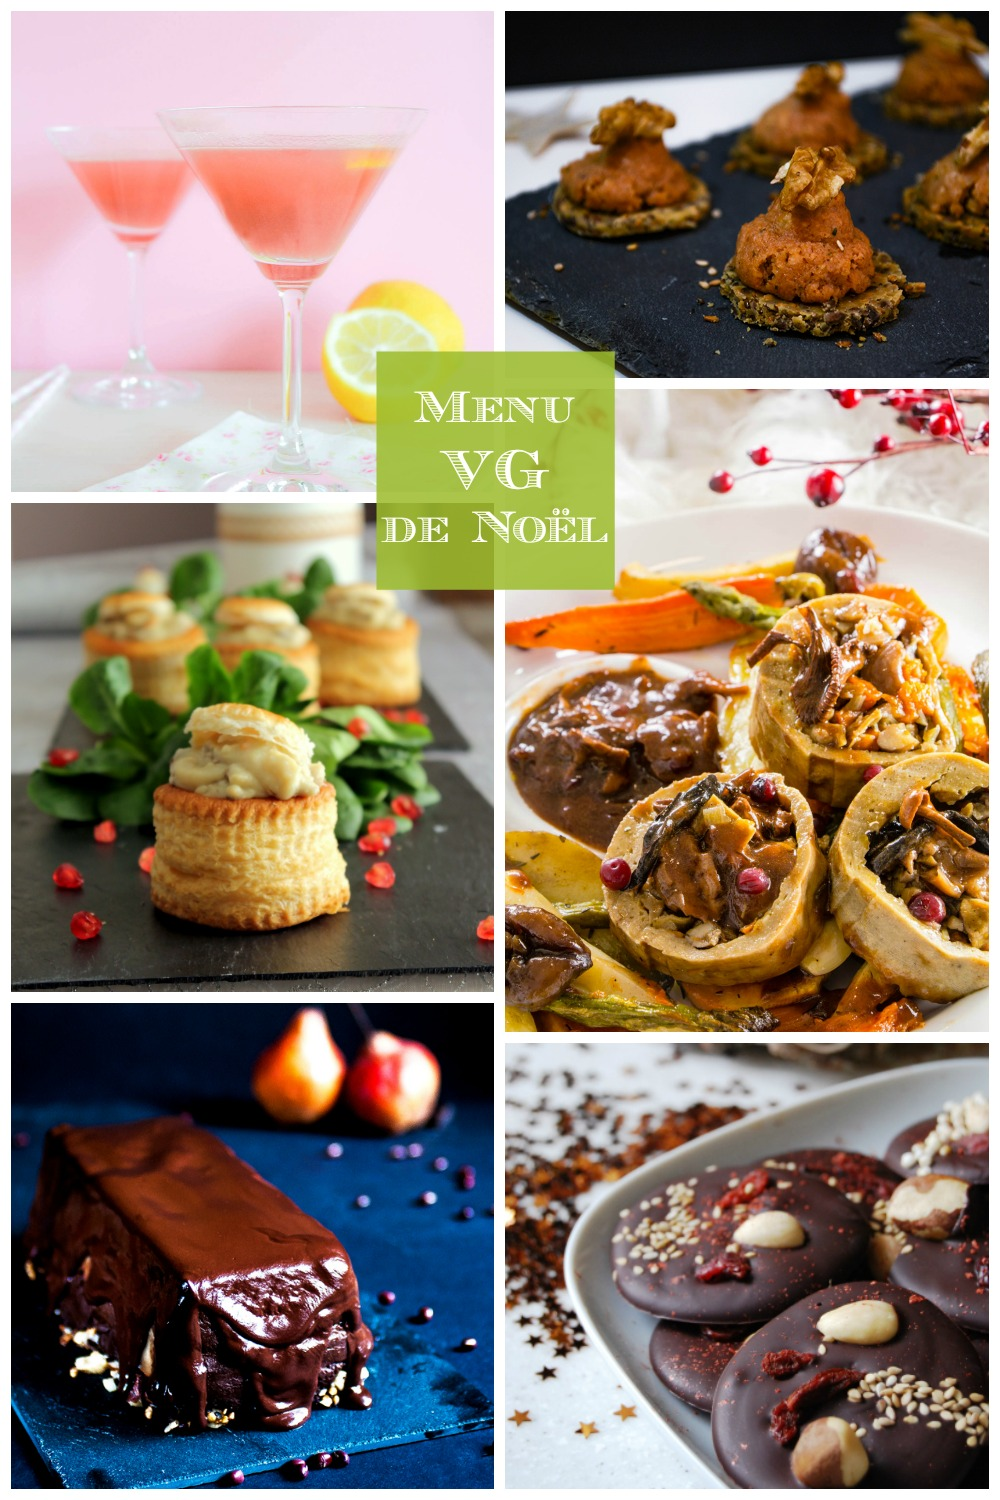 Menu Traditionnel De Noel.Menu Vg Traditionnel De Noel Vegan Freestyle